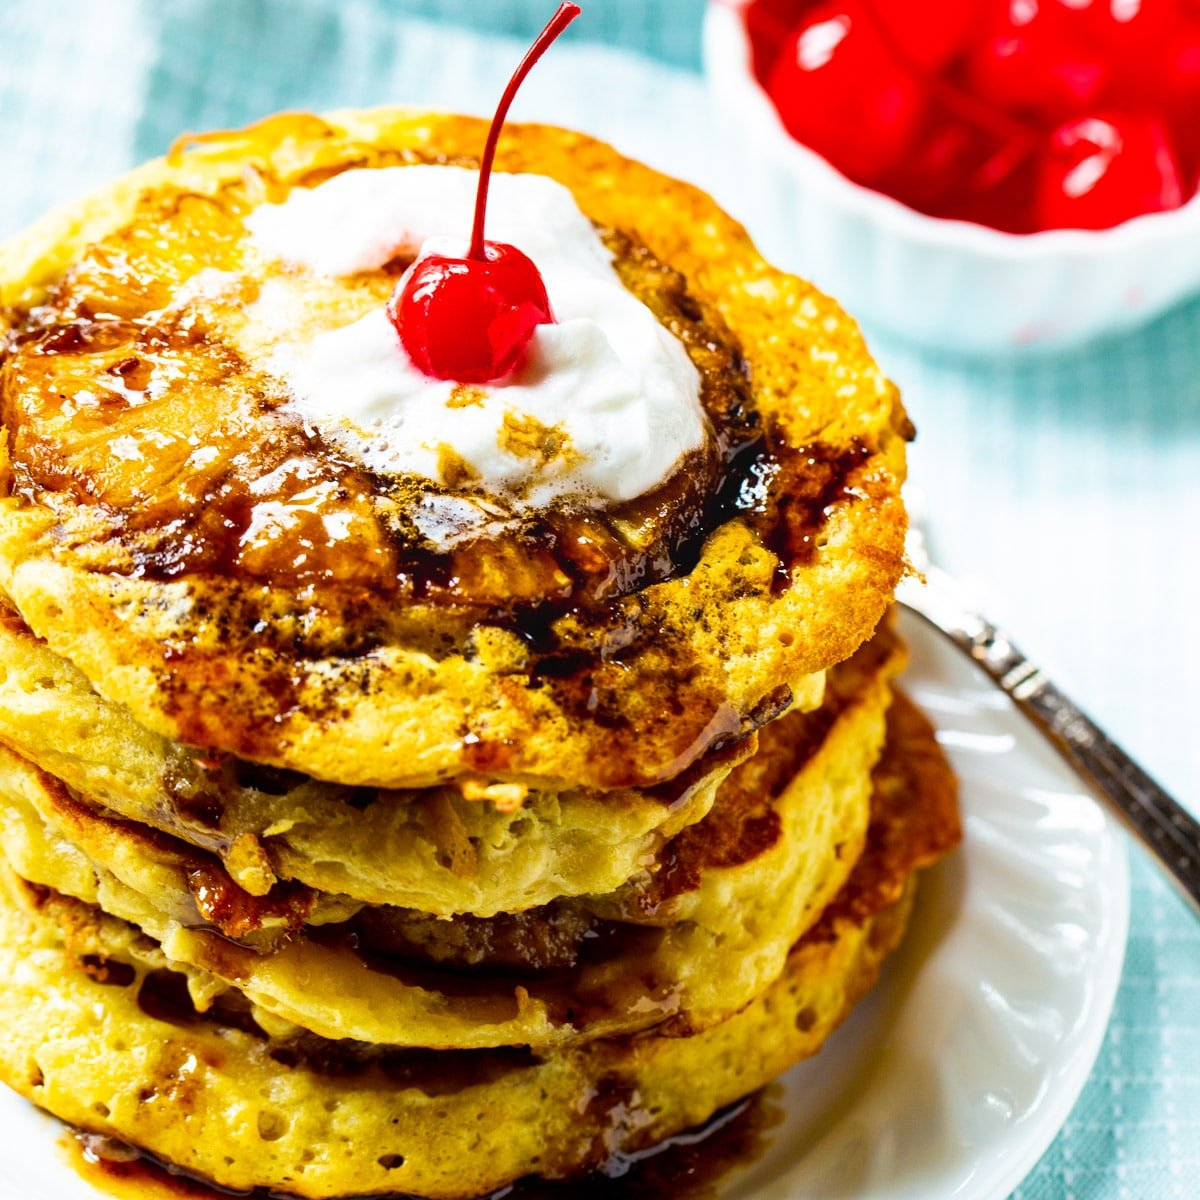 Stack of Pineapple Upside Down Pancakes on a plate.